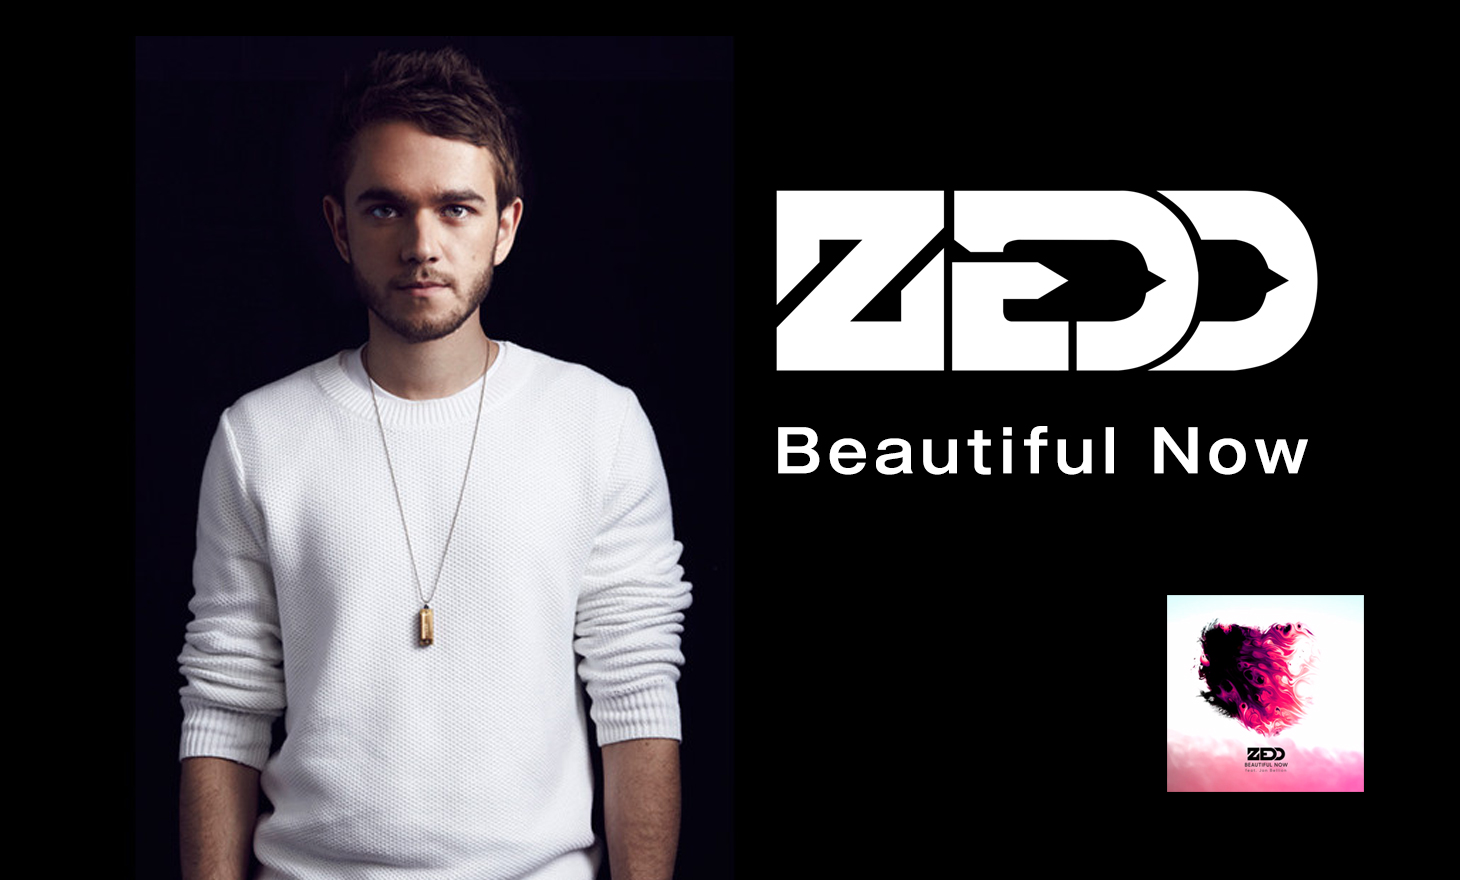 Zedd : Beautiful Now